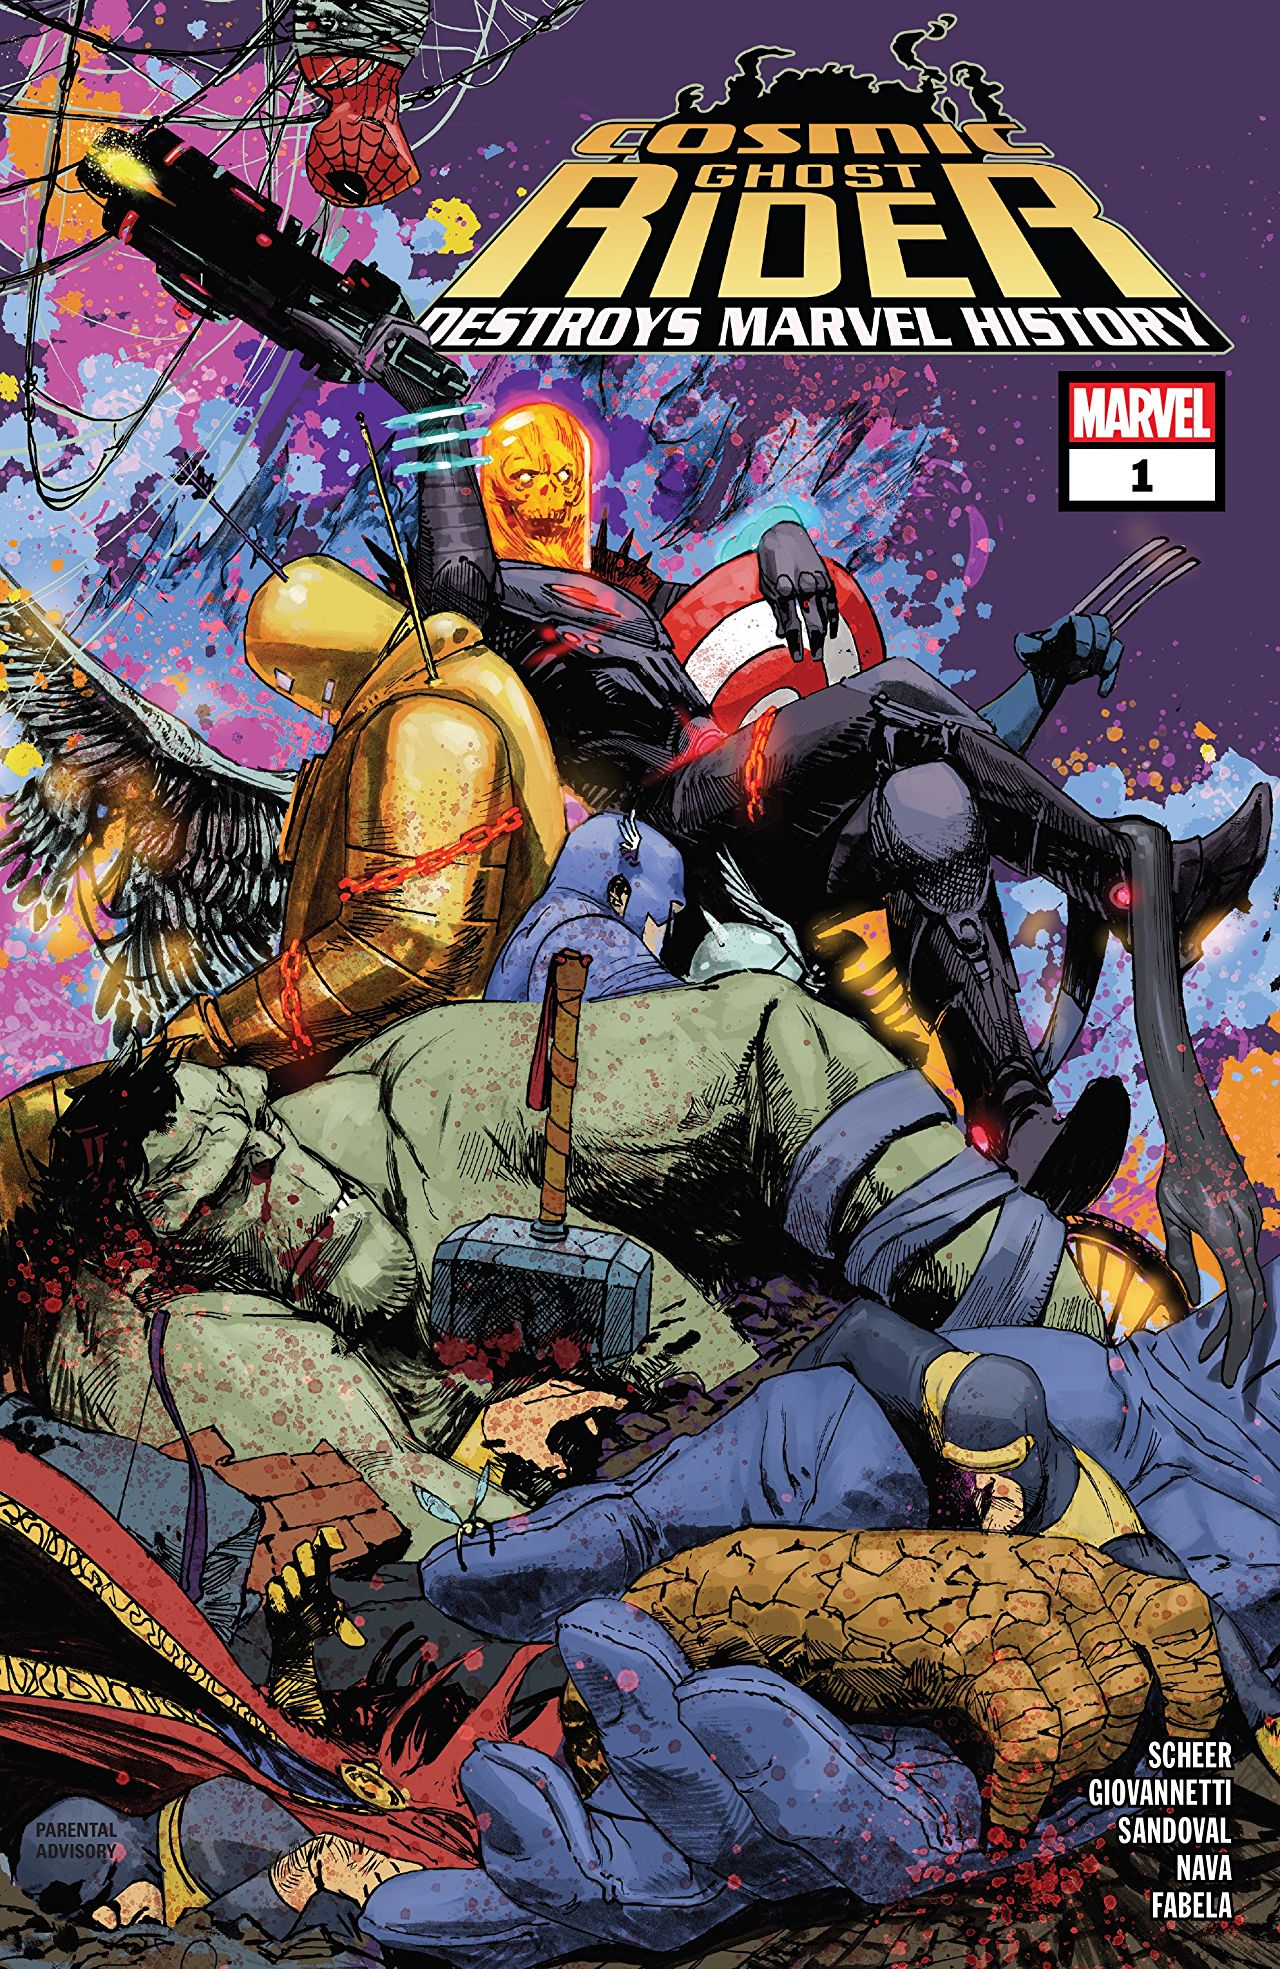 Marvel Preview: COSMIC GHOST RIDER DESTROYS MARVEL HISTORY #1